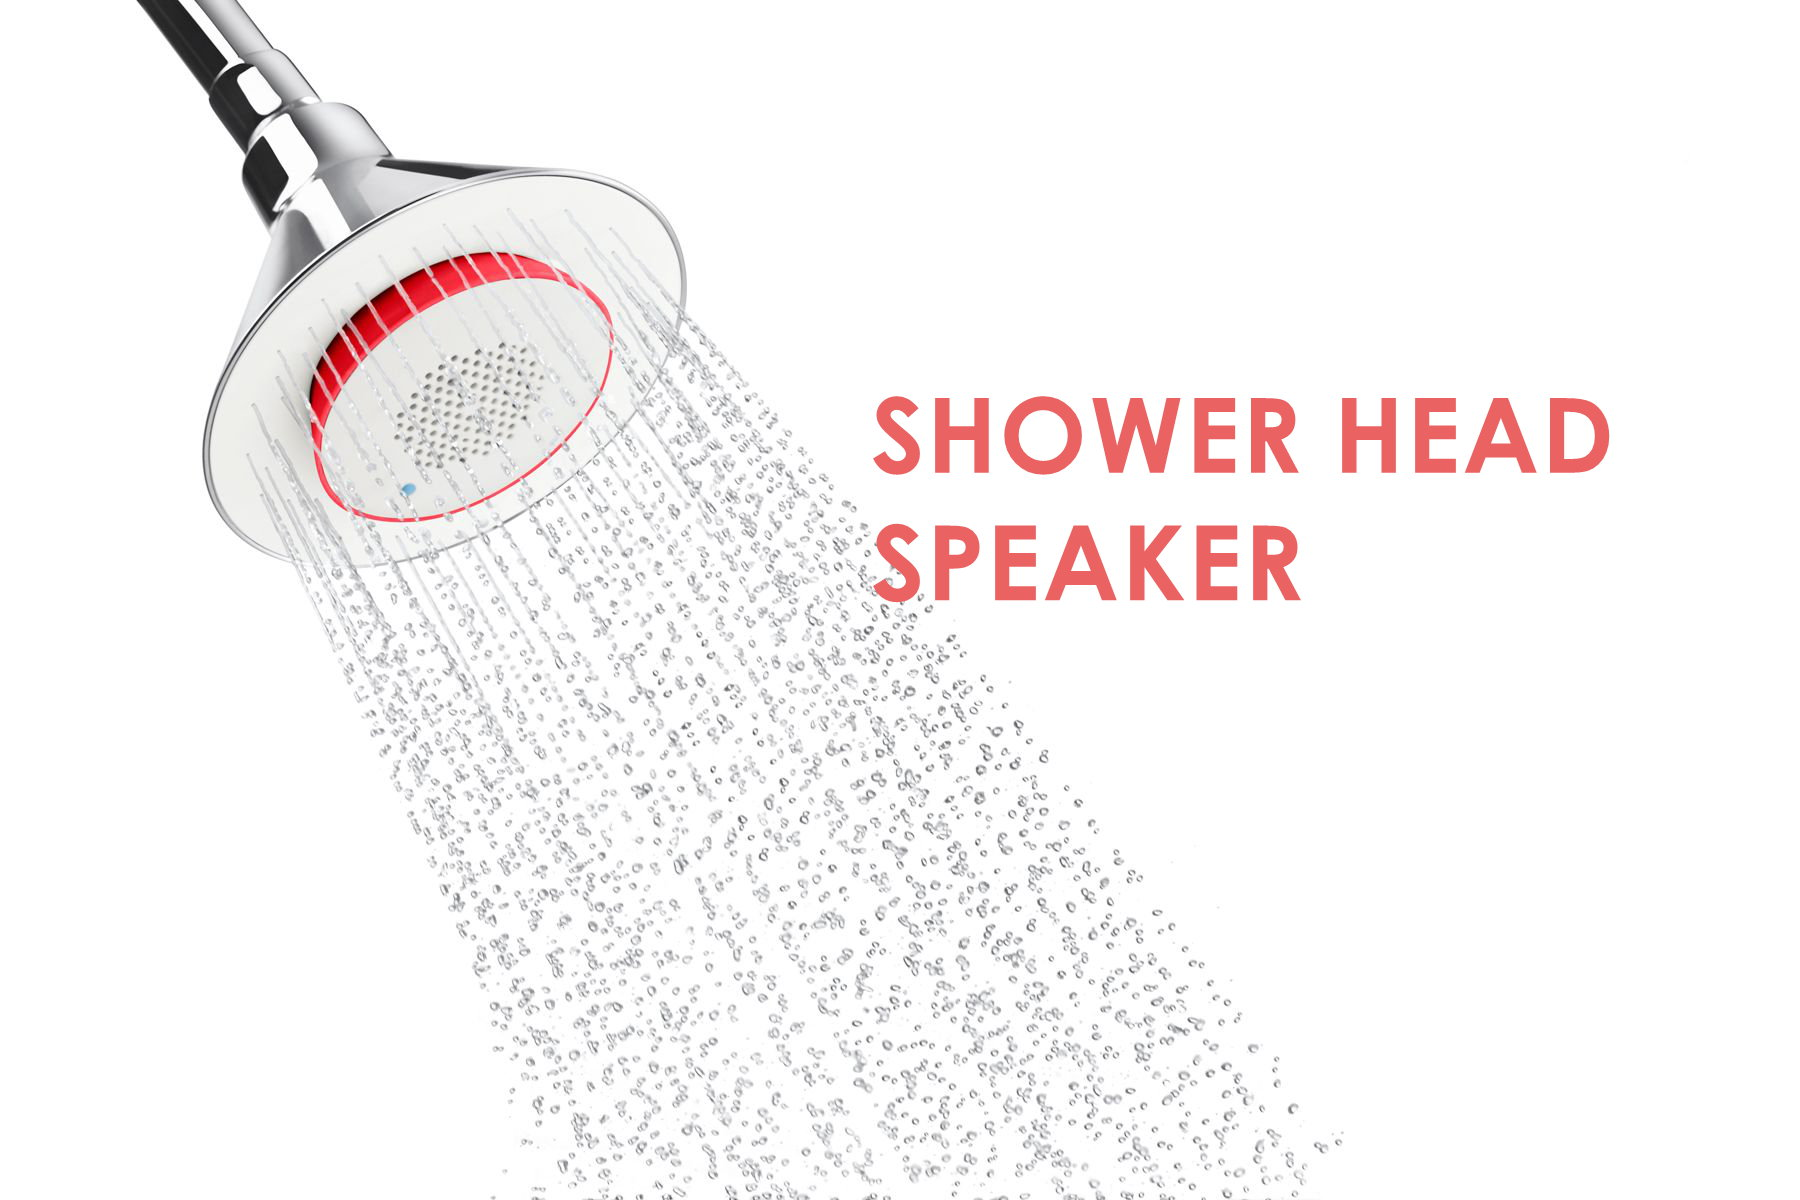 Think You Are Cut Out For Shower Head Speaker